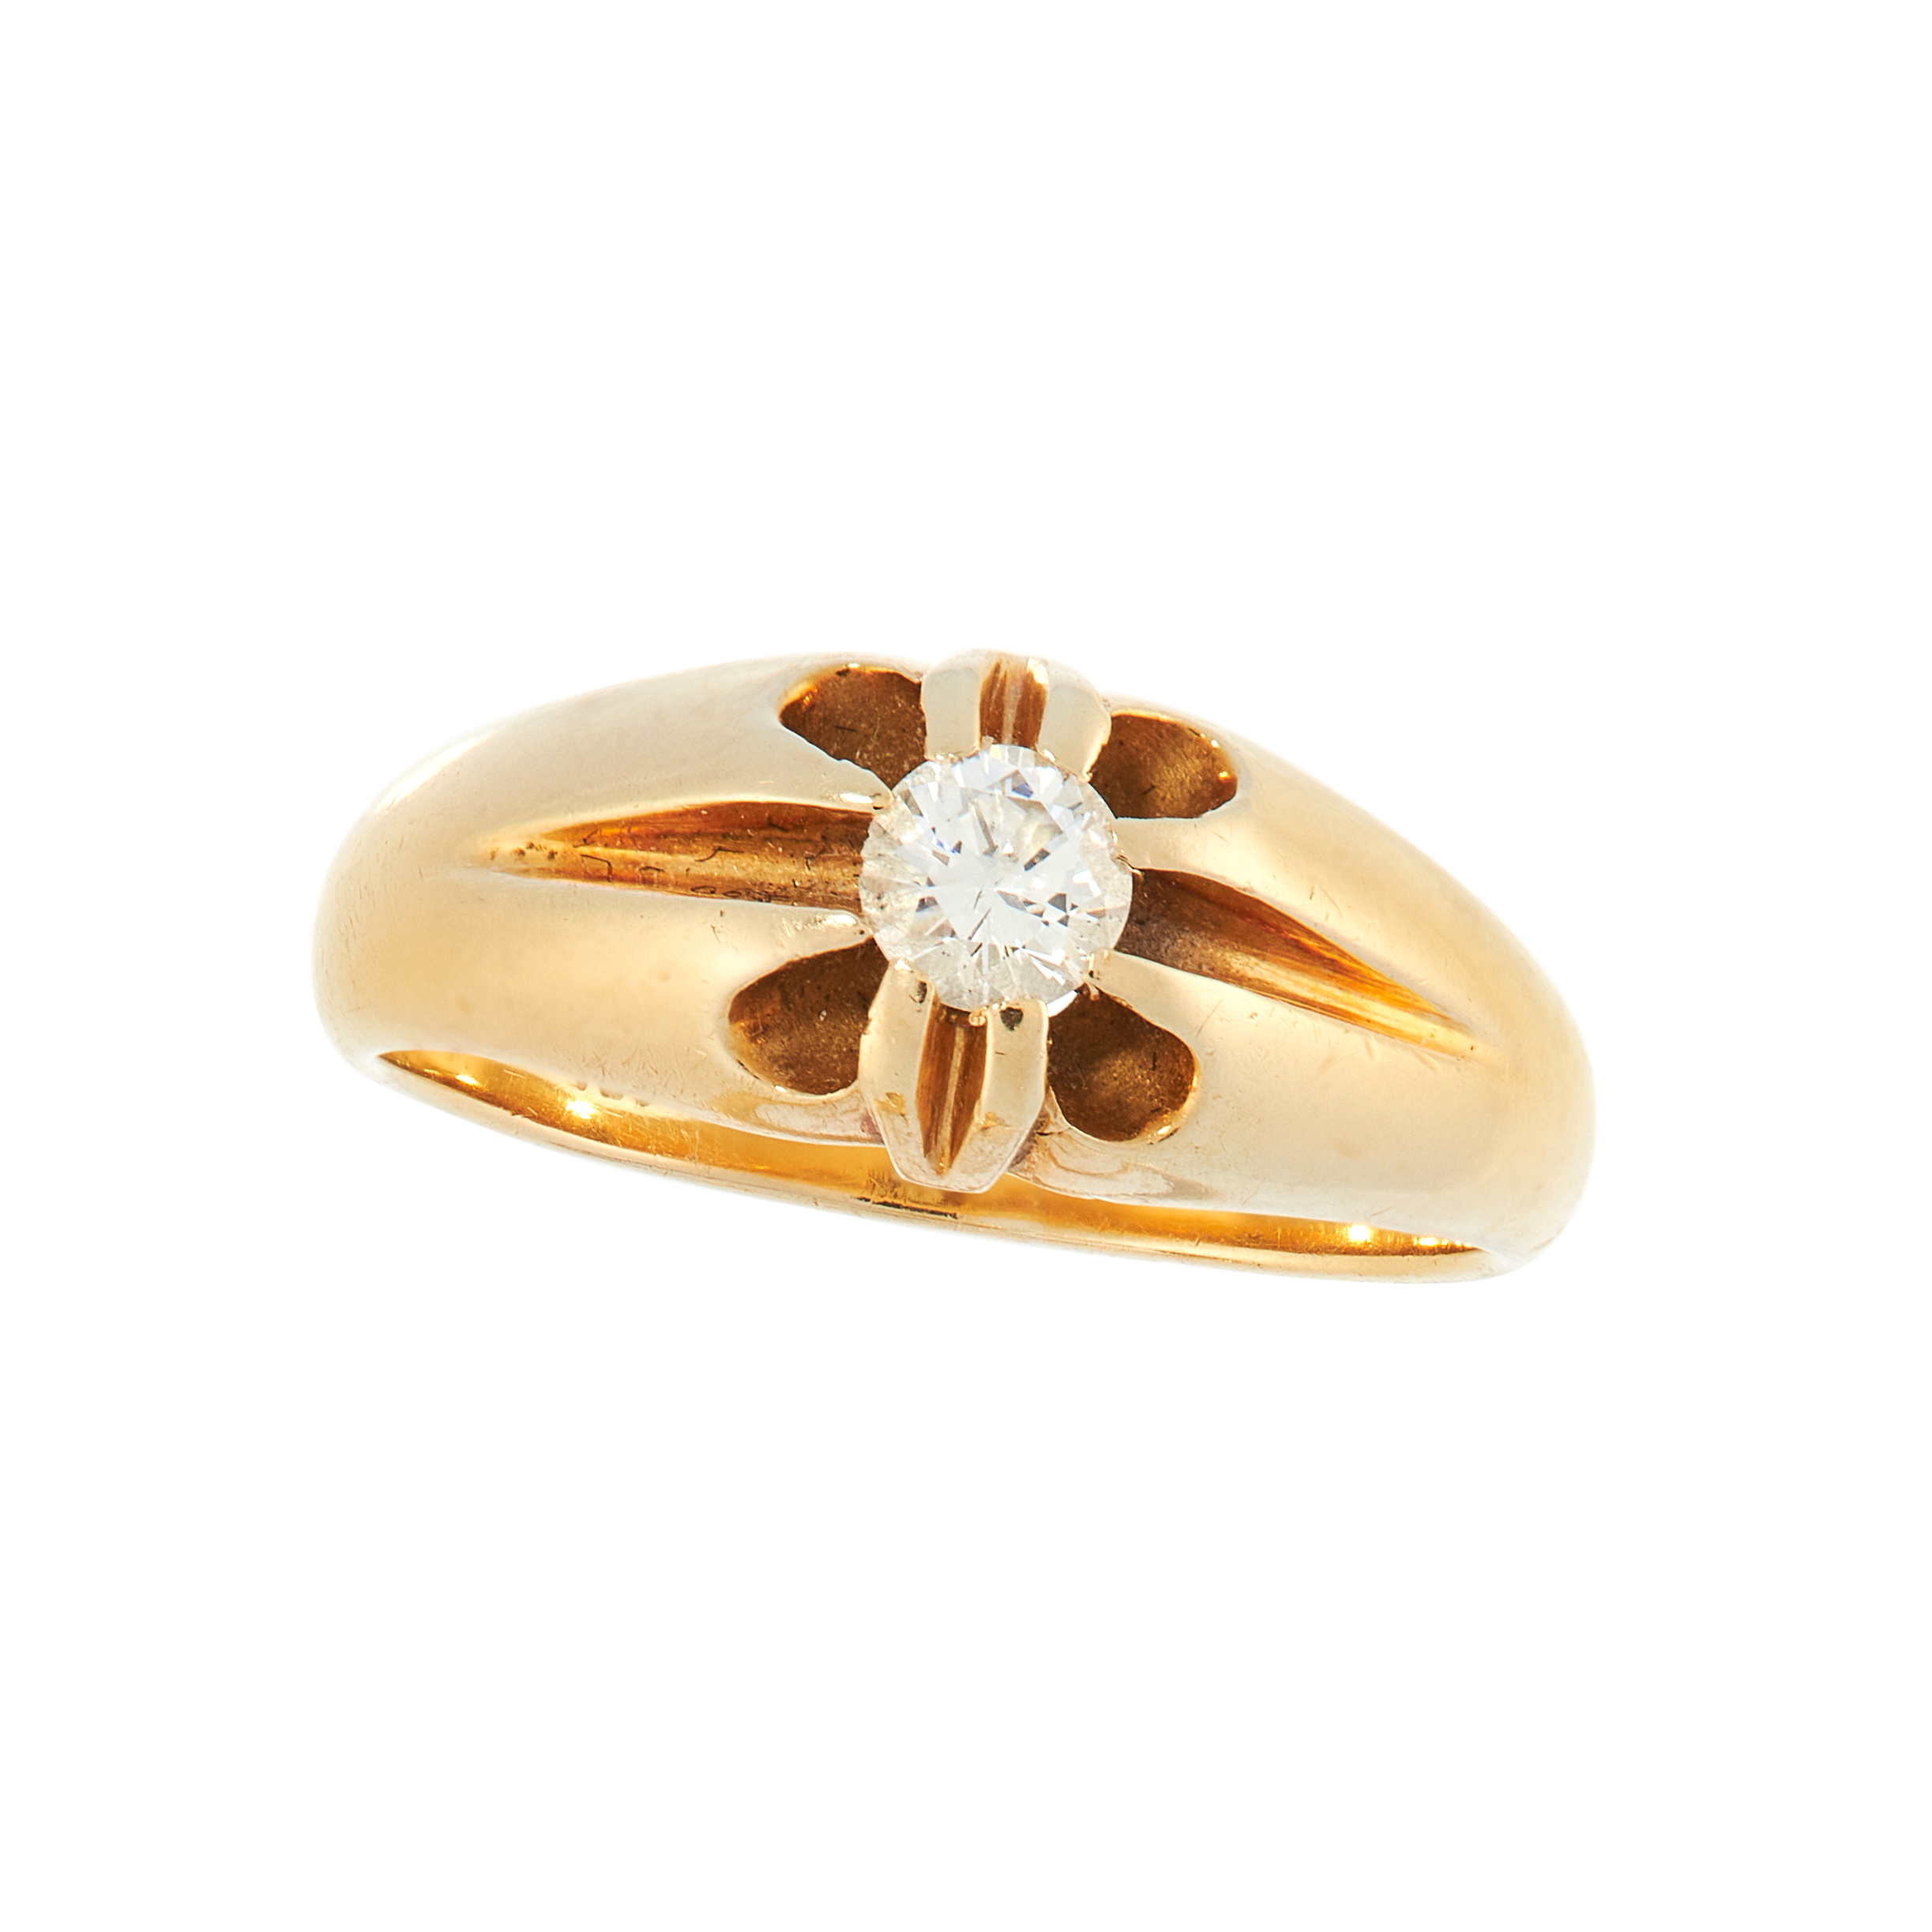 A SOLITAIRE DIAMOND DRESS RING in 18ct yellow gold, the tapering band set with a round cut diamond